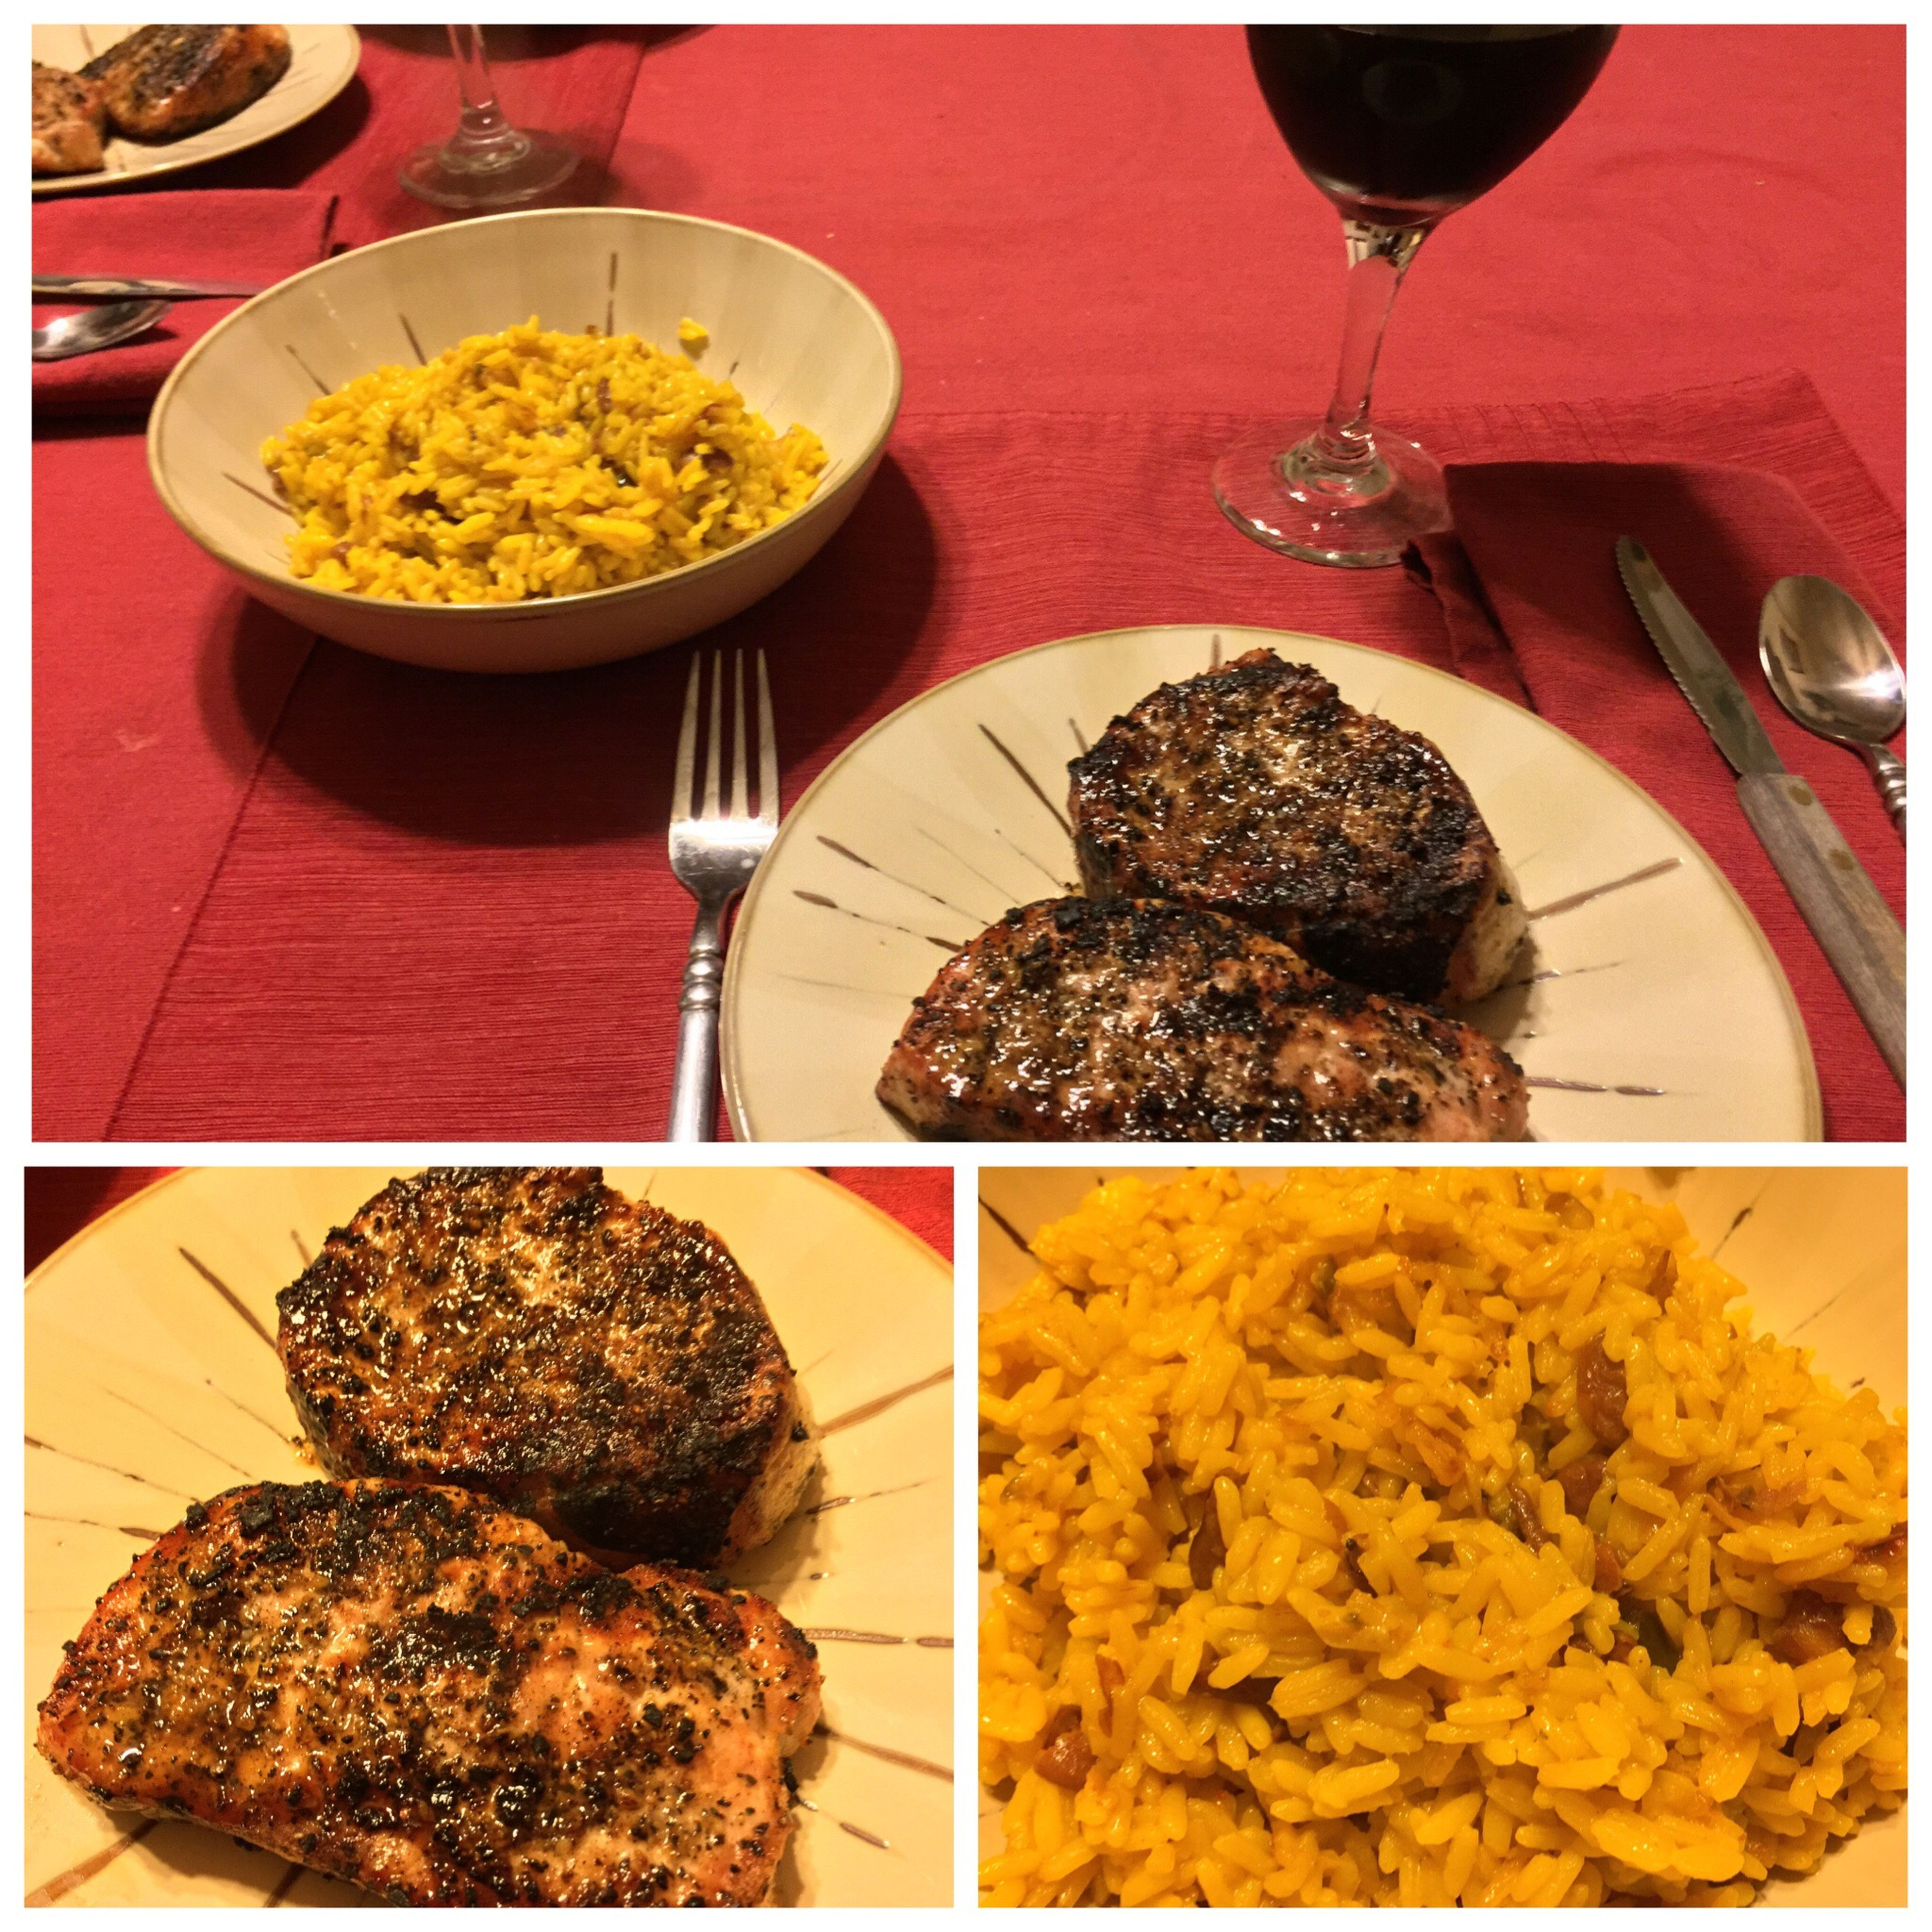 Last night, I grilled pork chops. Served them with yellow Spanish rice with red beans and my homemade 2014 Californian Chianti. ICanCookMyAssOff ItsAnItalianThing Grilling HomemadeItalianWine Nomnombomb Food Porn Awards MyFoodPics Food Porn